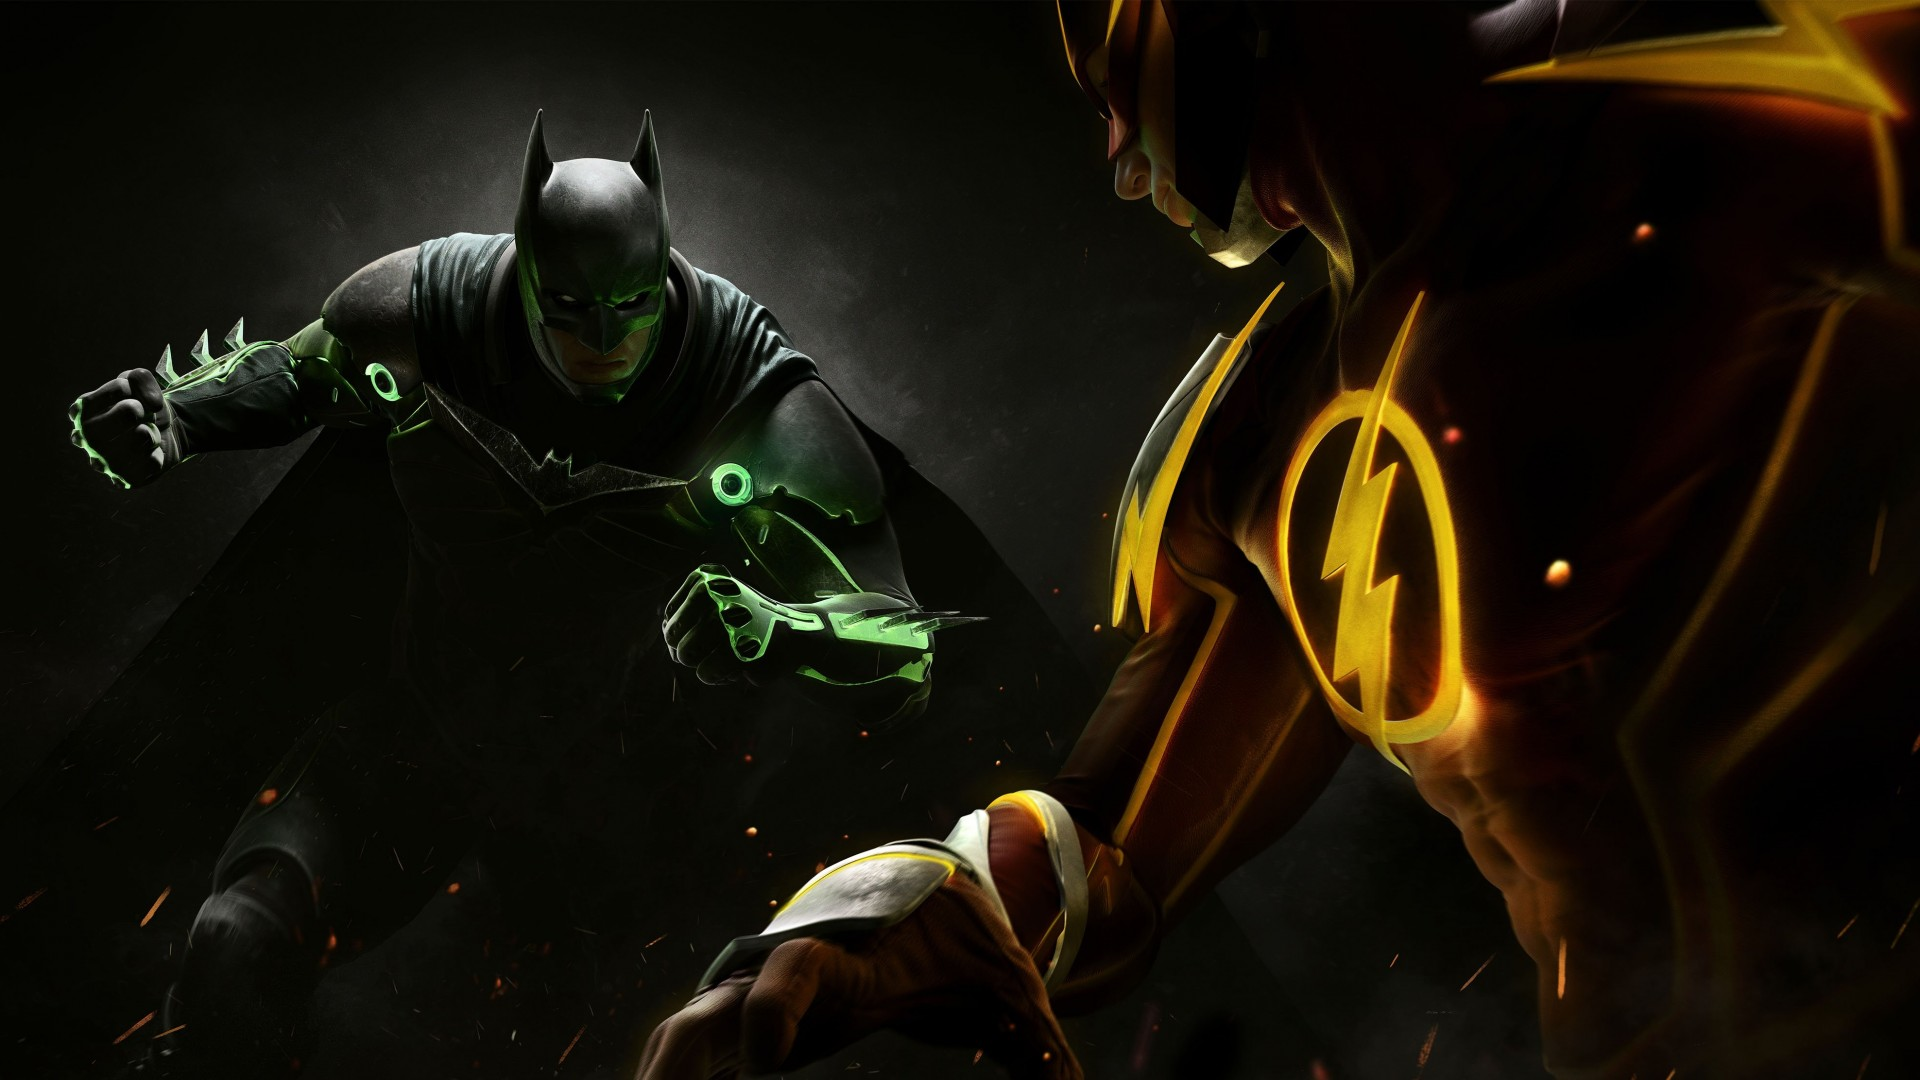 Flash Injustice Wallpaper Wide Is Cool Wallpapers